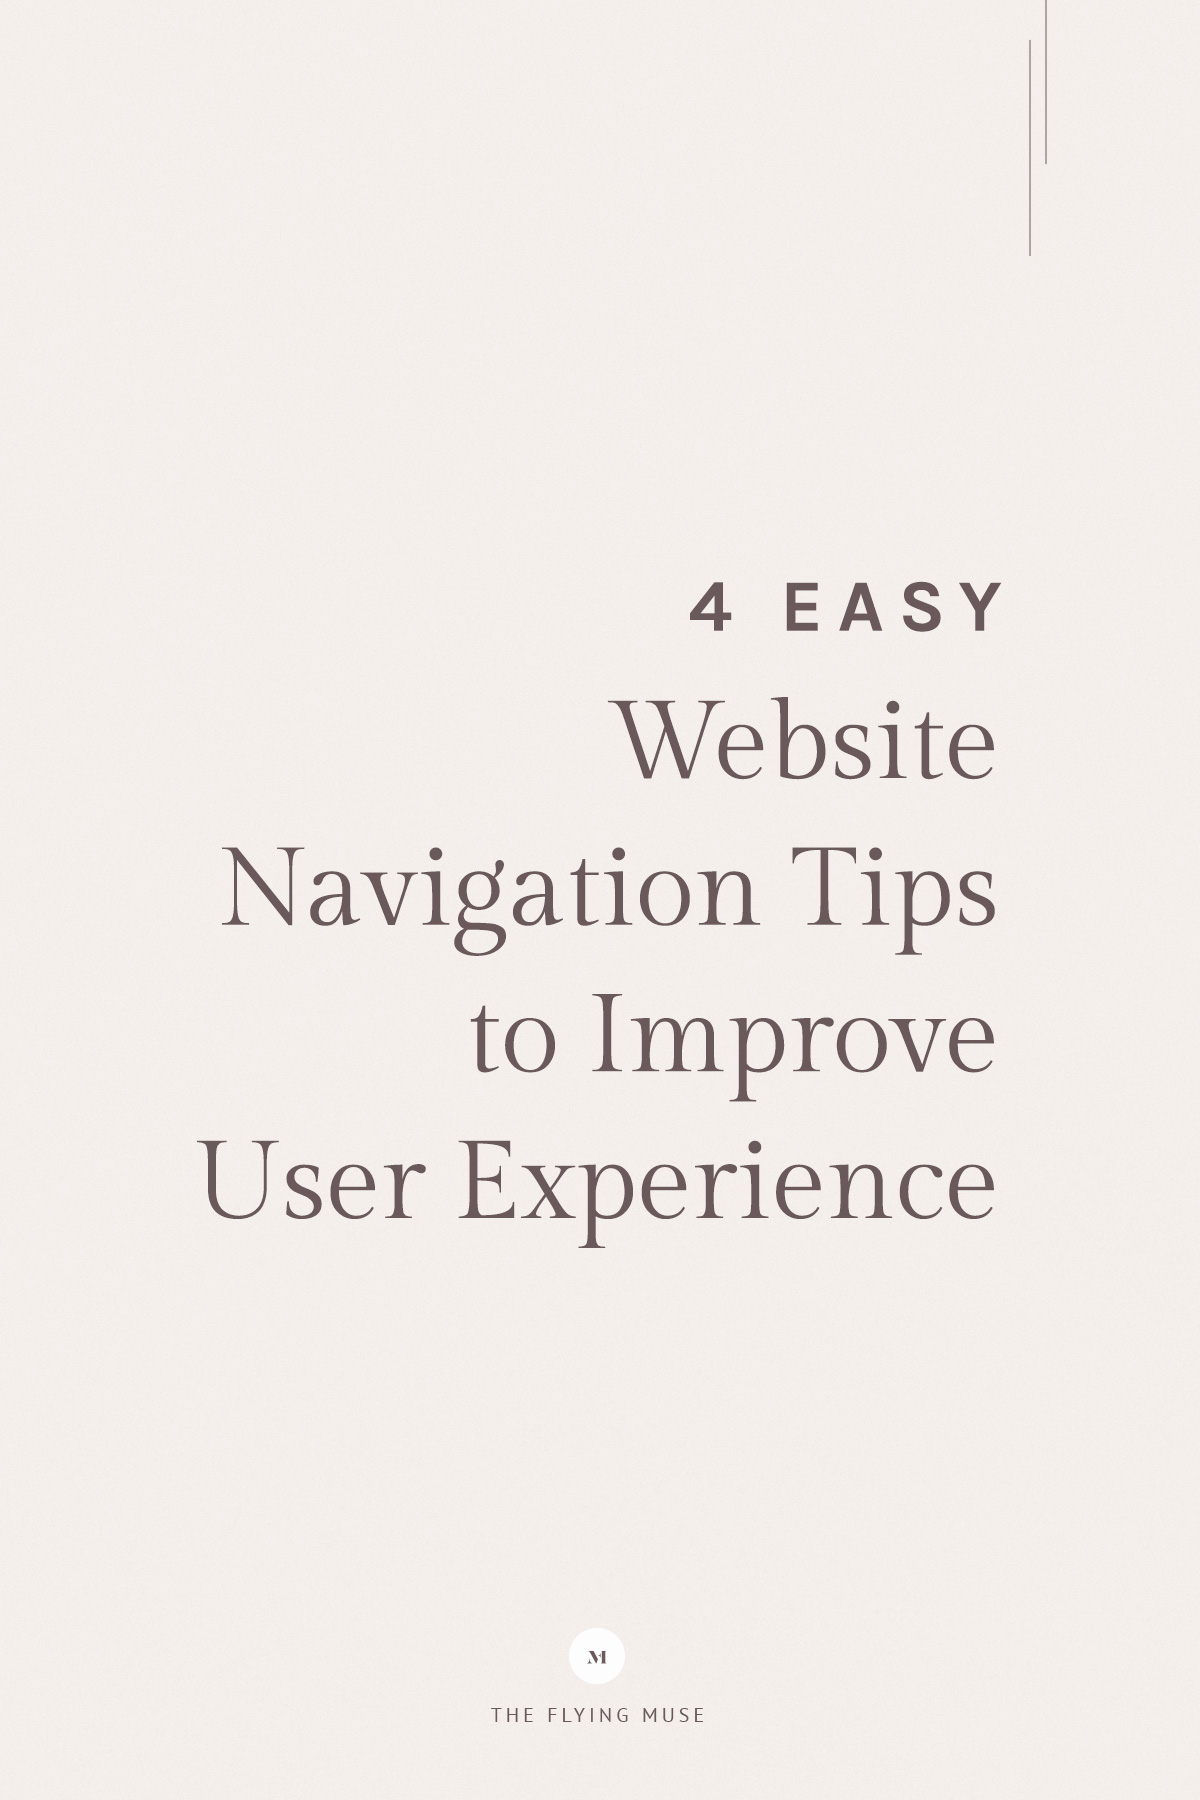 Easy Website Navigation Tips to Improve User Experience